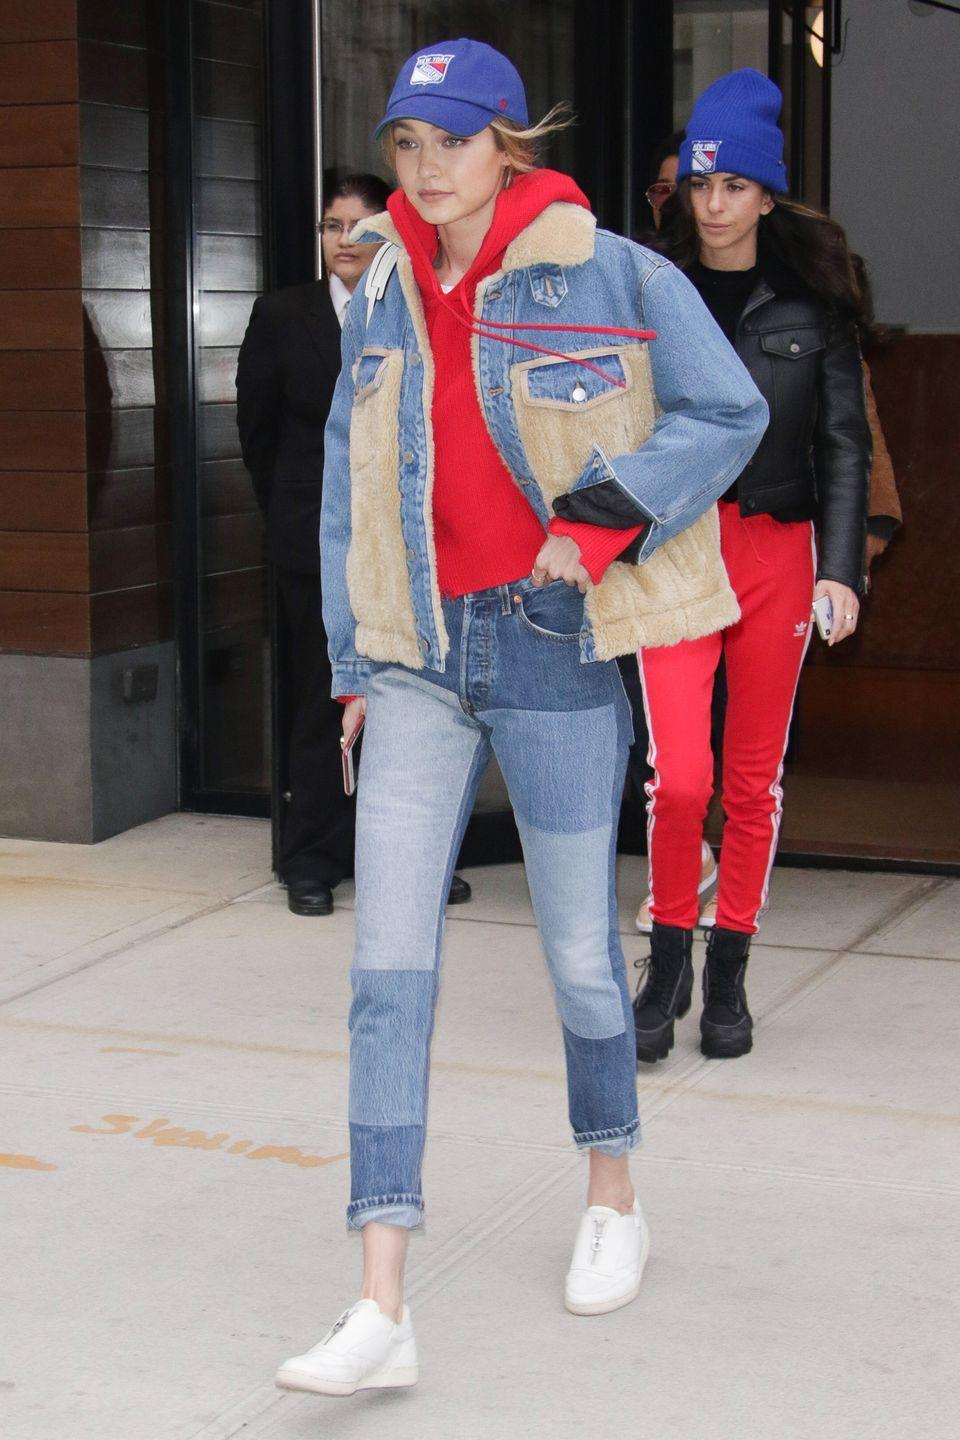 <p>In patchwork denim, a red sweatshirt under a denim and shearling coat, with a 'Rangers' baseball-style hat, and white sneakers while out in New York,</p>